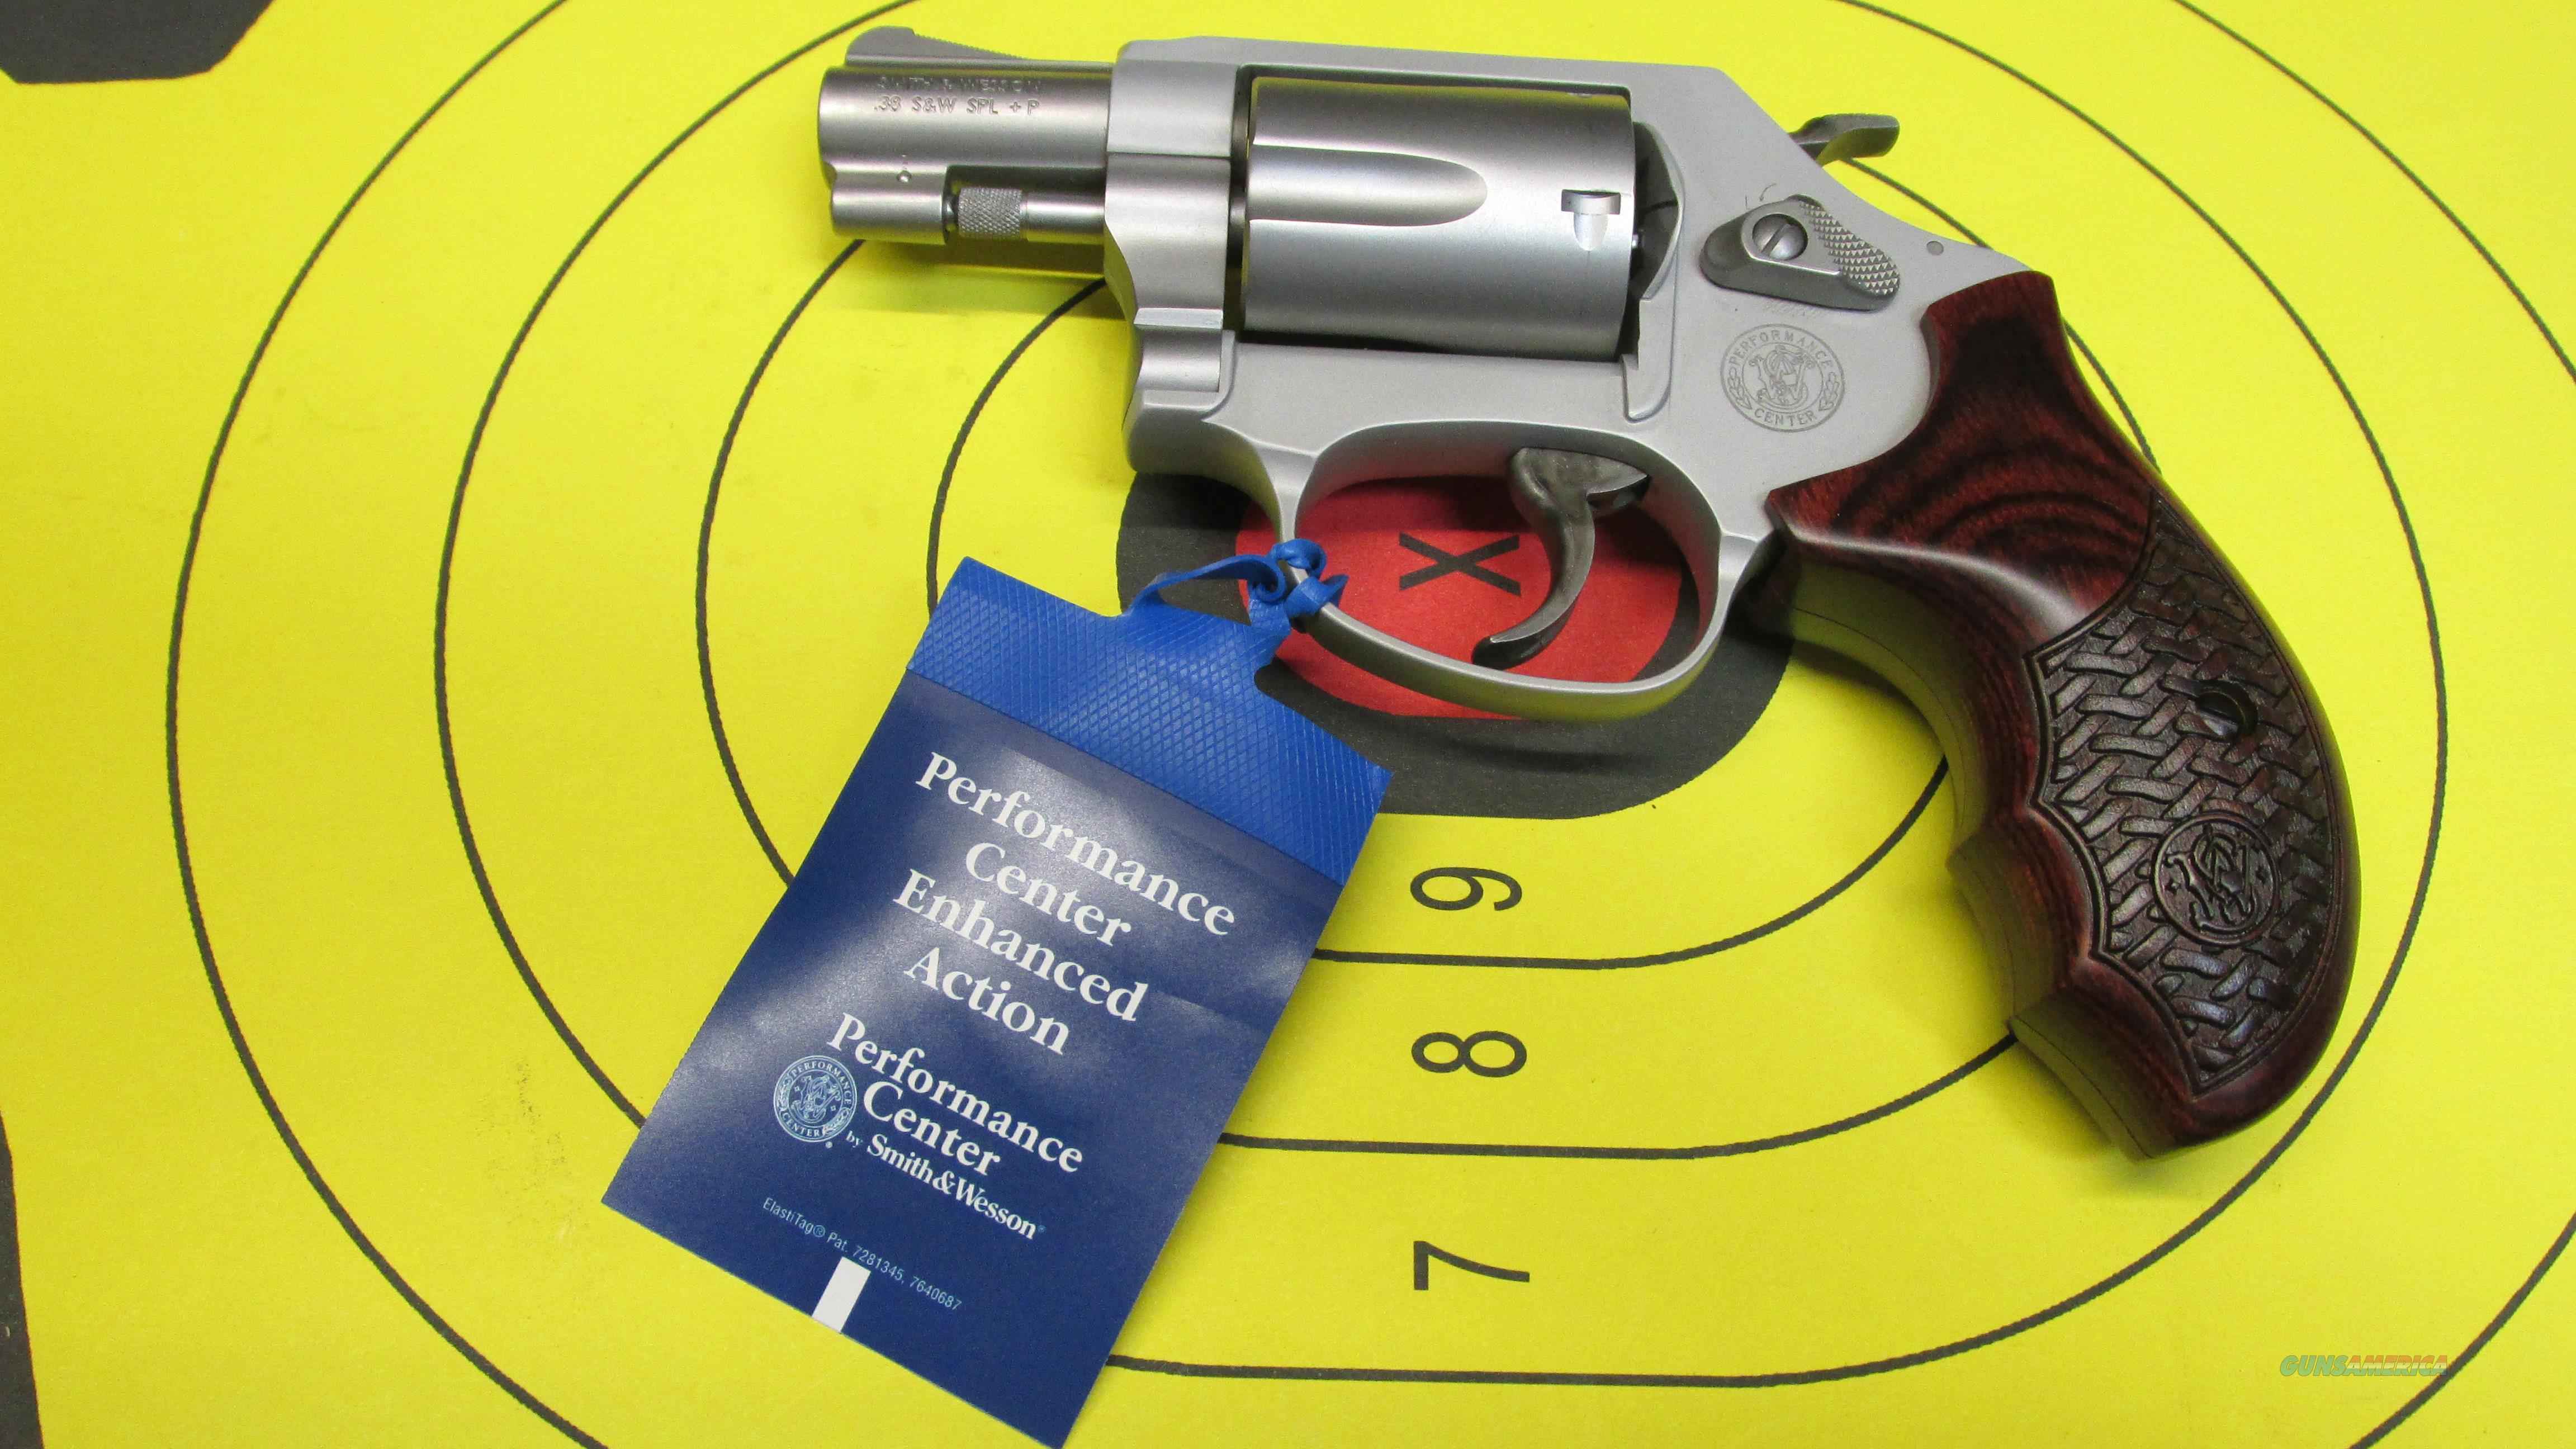 "SMITH &WESSON 637-2 PERFORMANCE CENTER .38 SPECIAL 5 SHOT REVOLVER, 1.875"" BARREL  Guns > Pistols > Smith & Wesson Revolvers > Performance Center"